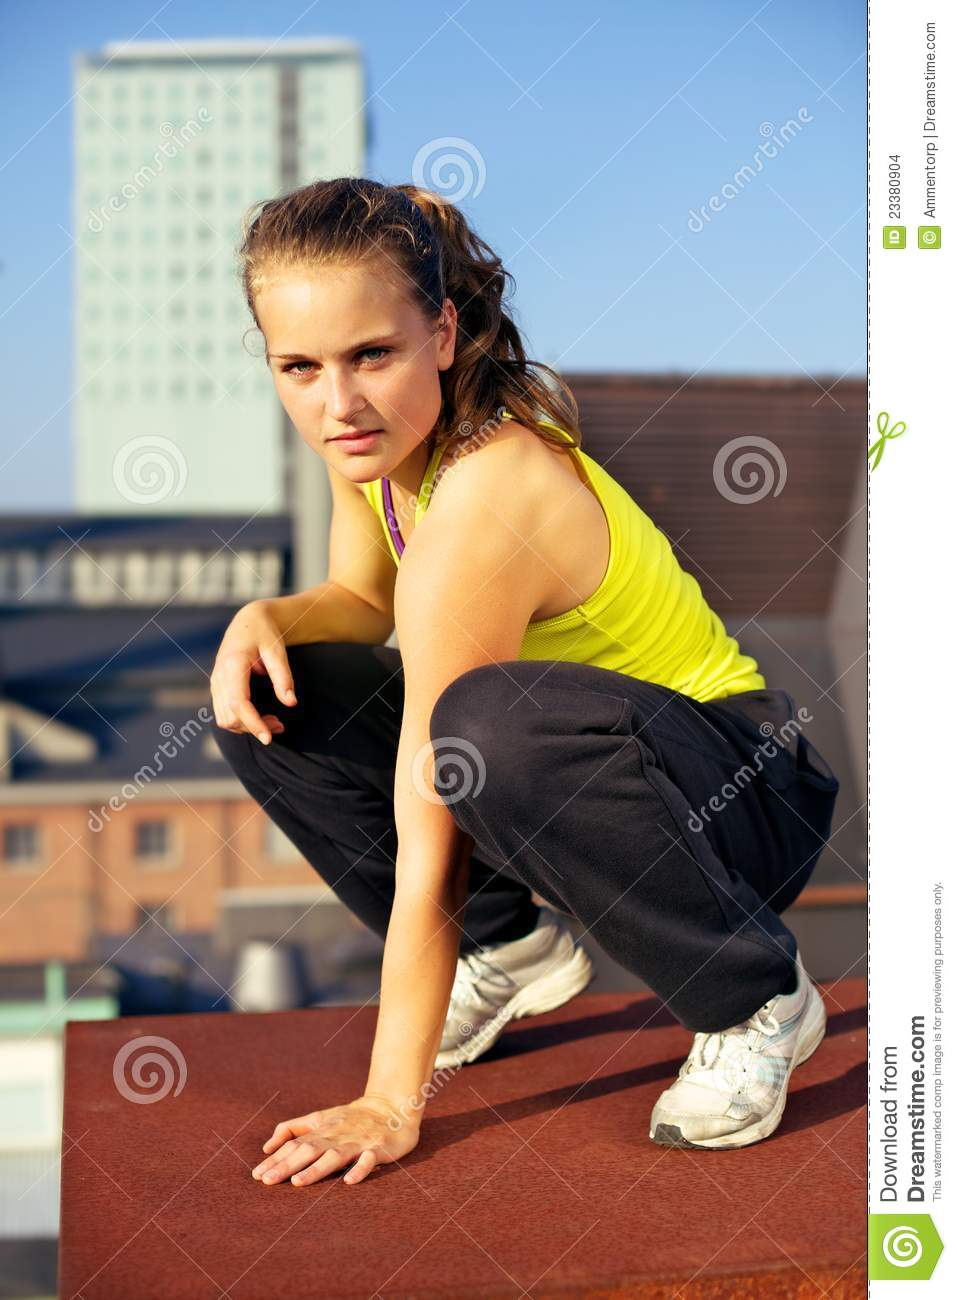 Girls Fitness Wallpaper Parkour On Urban Building Rooftop Stock Images Image